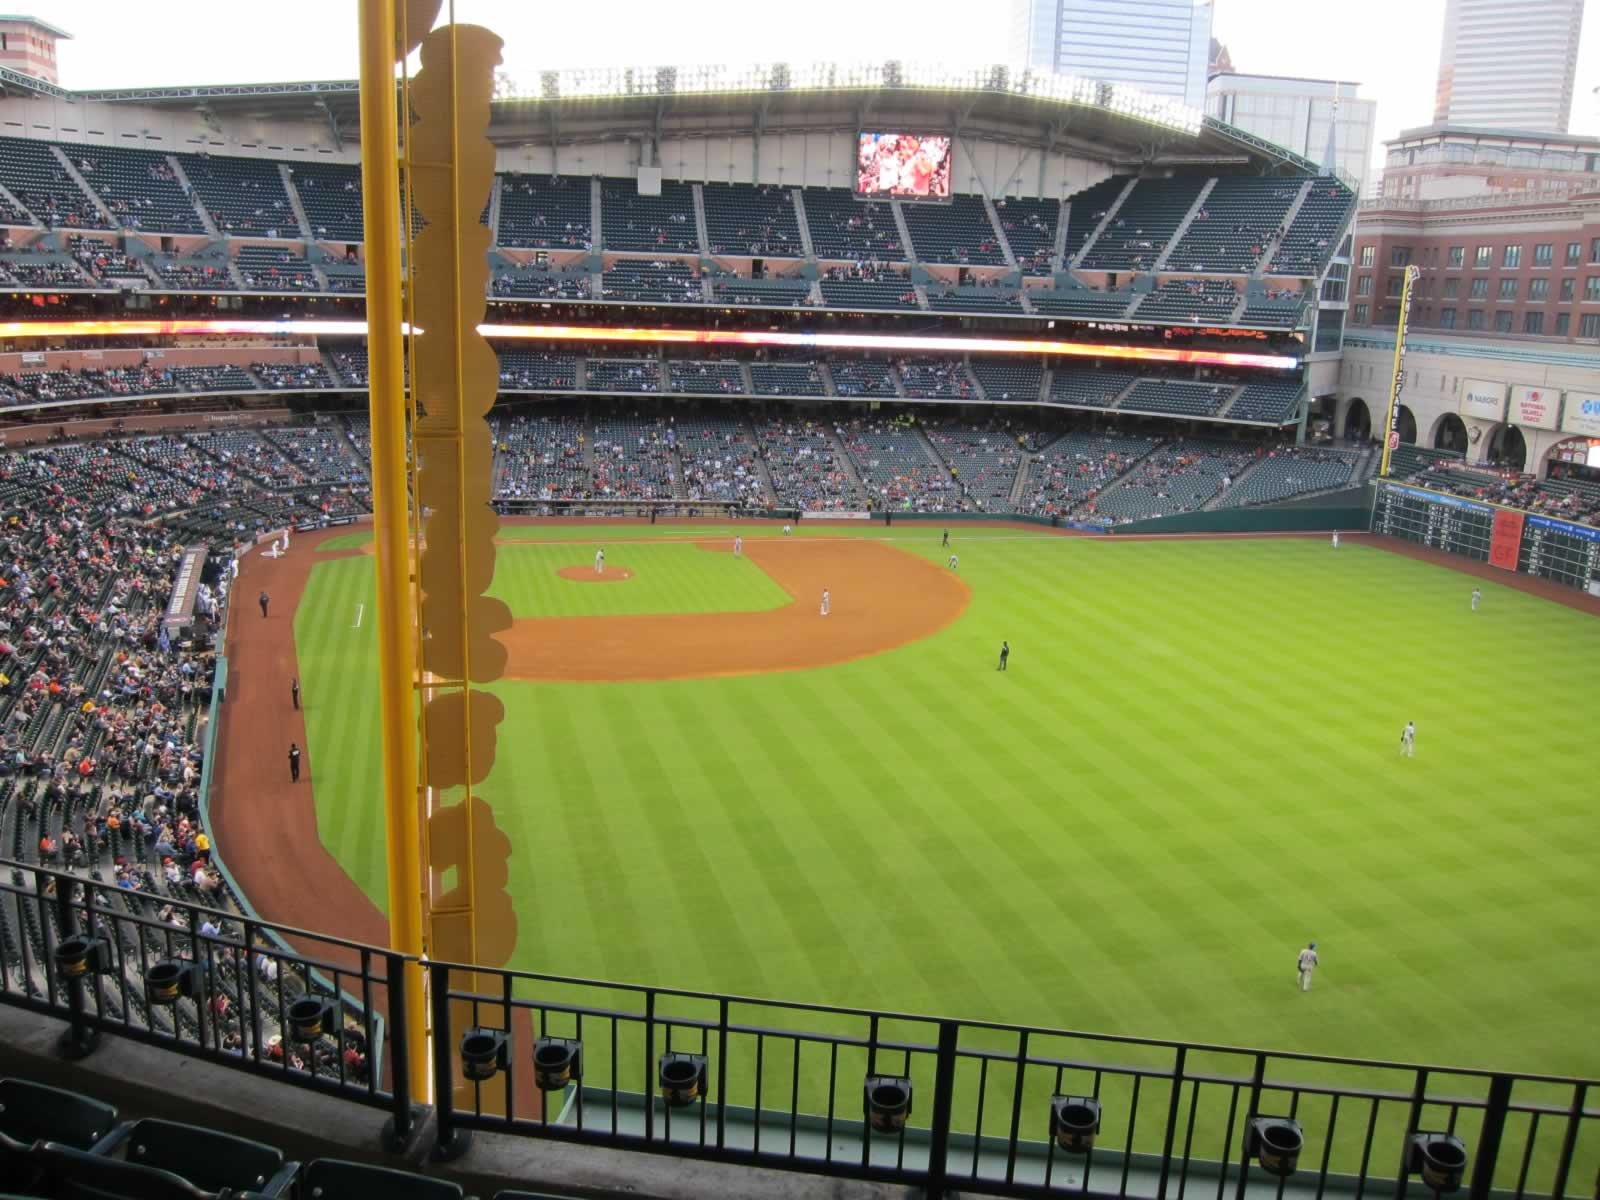 Seat View for Minute Maid Park Section 337, Row 4, Seat 15